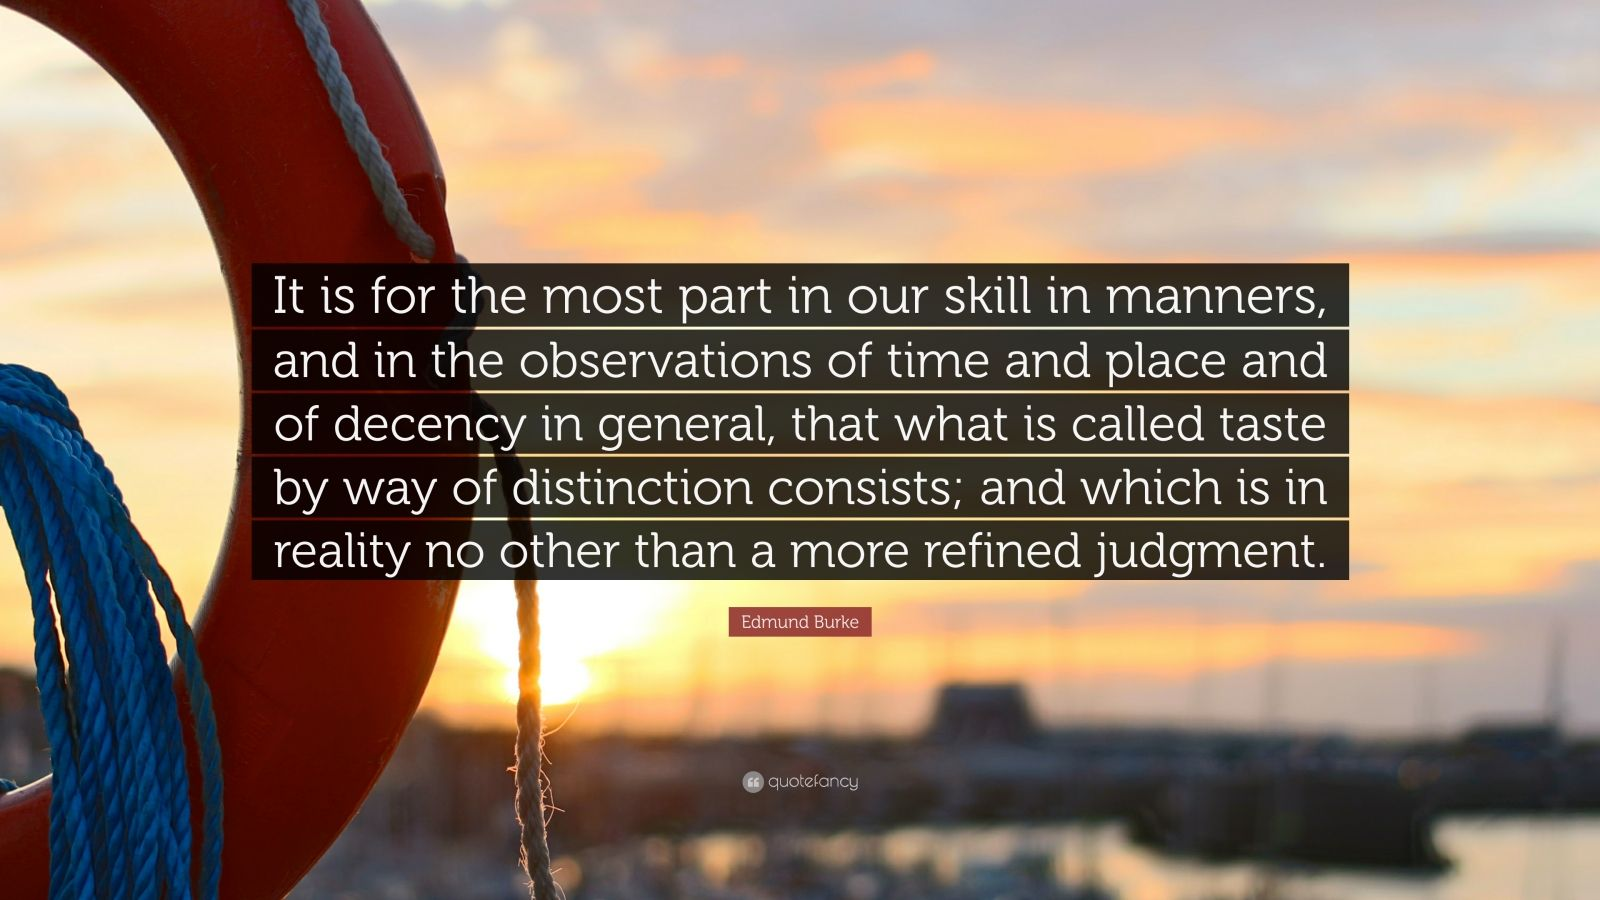 "Edmund Burke Quote: ""It is for the most part in our skill in manners, and in the observations of time and place and of decency in general, that what is called taste by way of distinction consists; and which is in reality no other than a more refined judgment."""